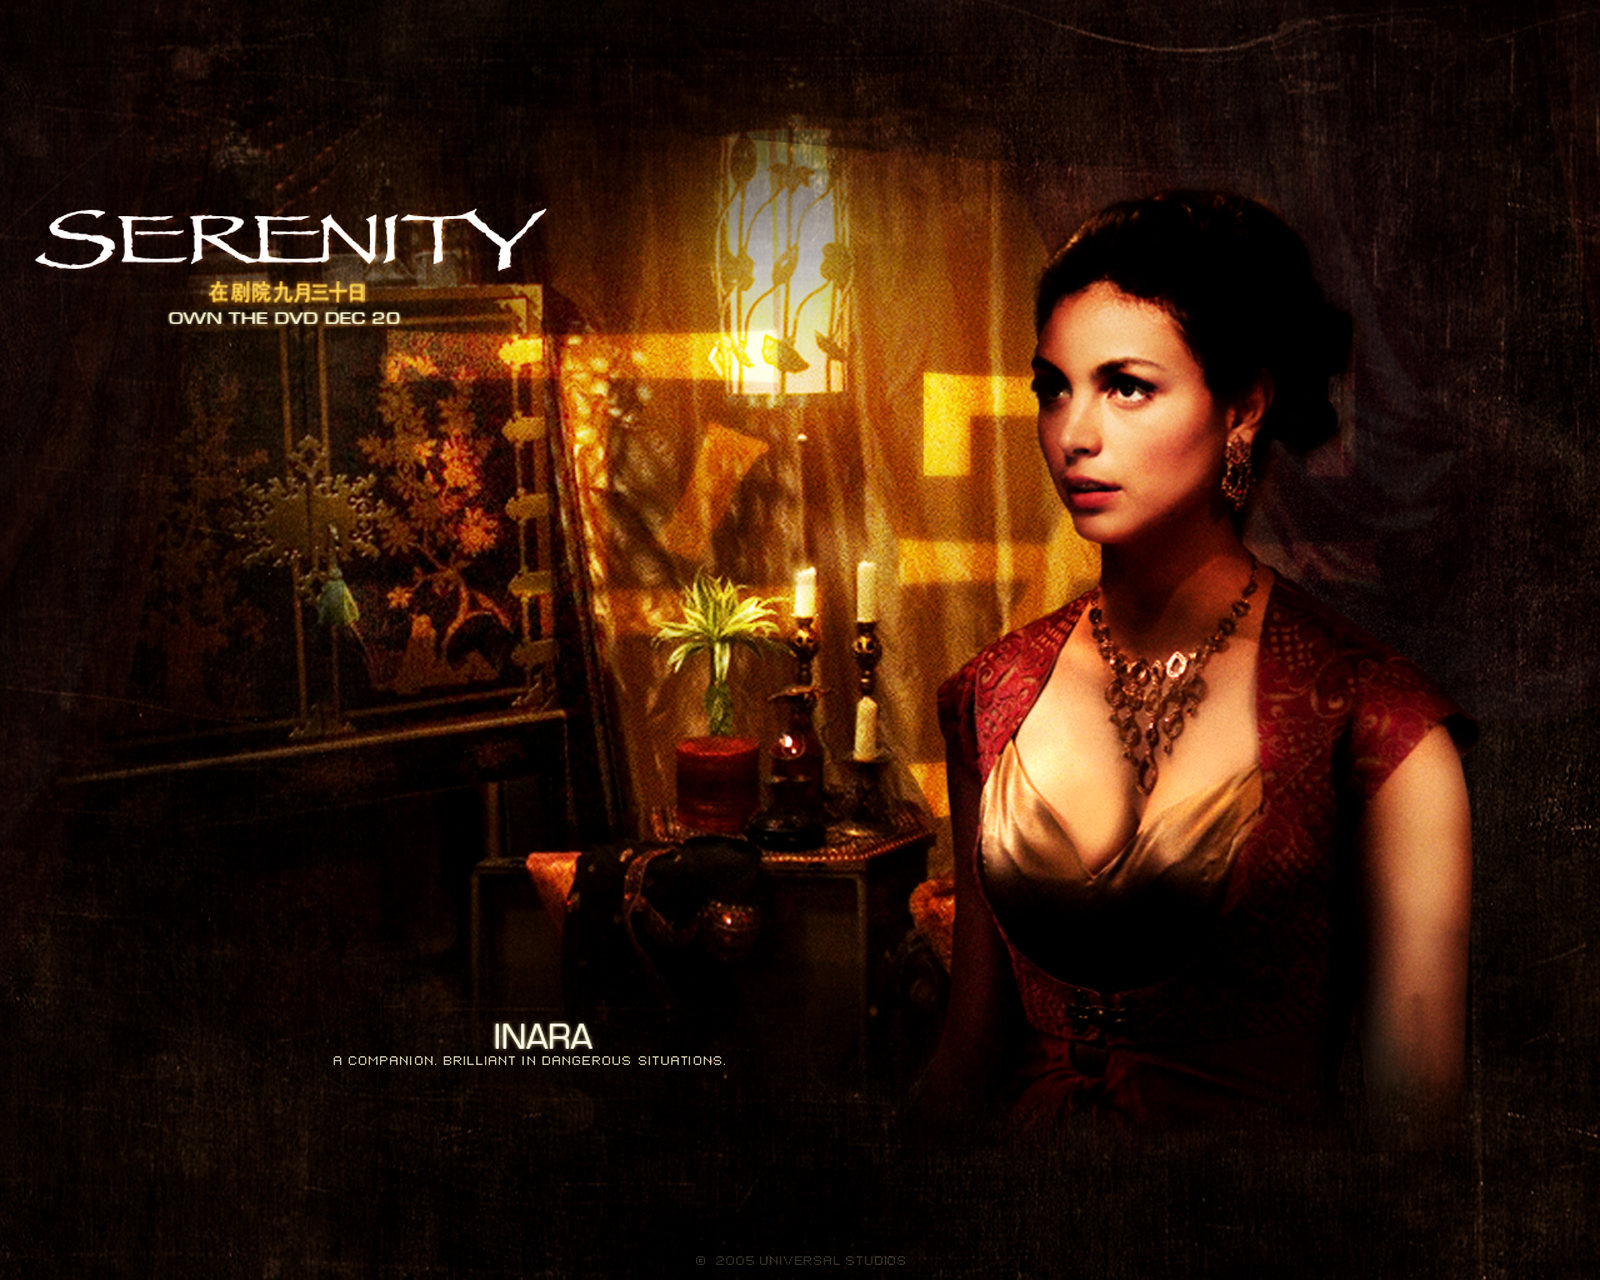 serenity image page - photo #24